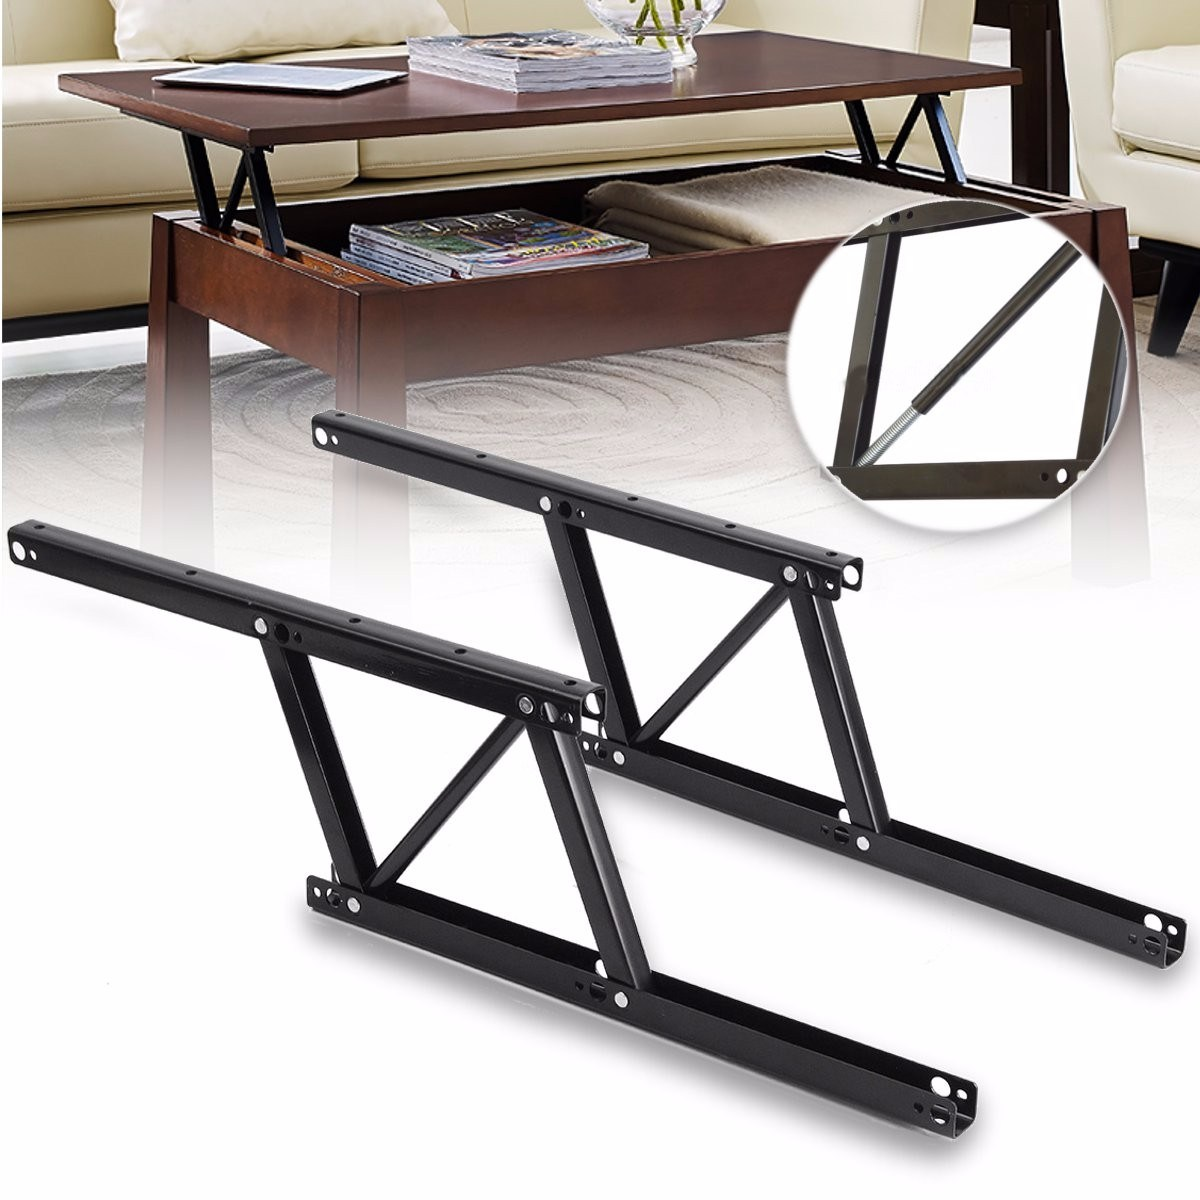 1 Pair Lift Up Coffee Table Mechanism Table Furniture Hardware Fiftting Usage for Table Cabinet Desk 38*16.5cm Spring Hinges-in Cabinet Hinges from Home Improvement